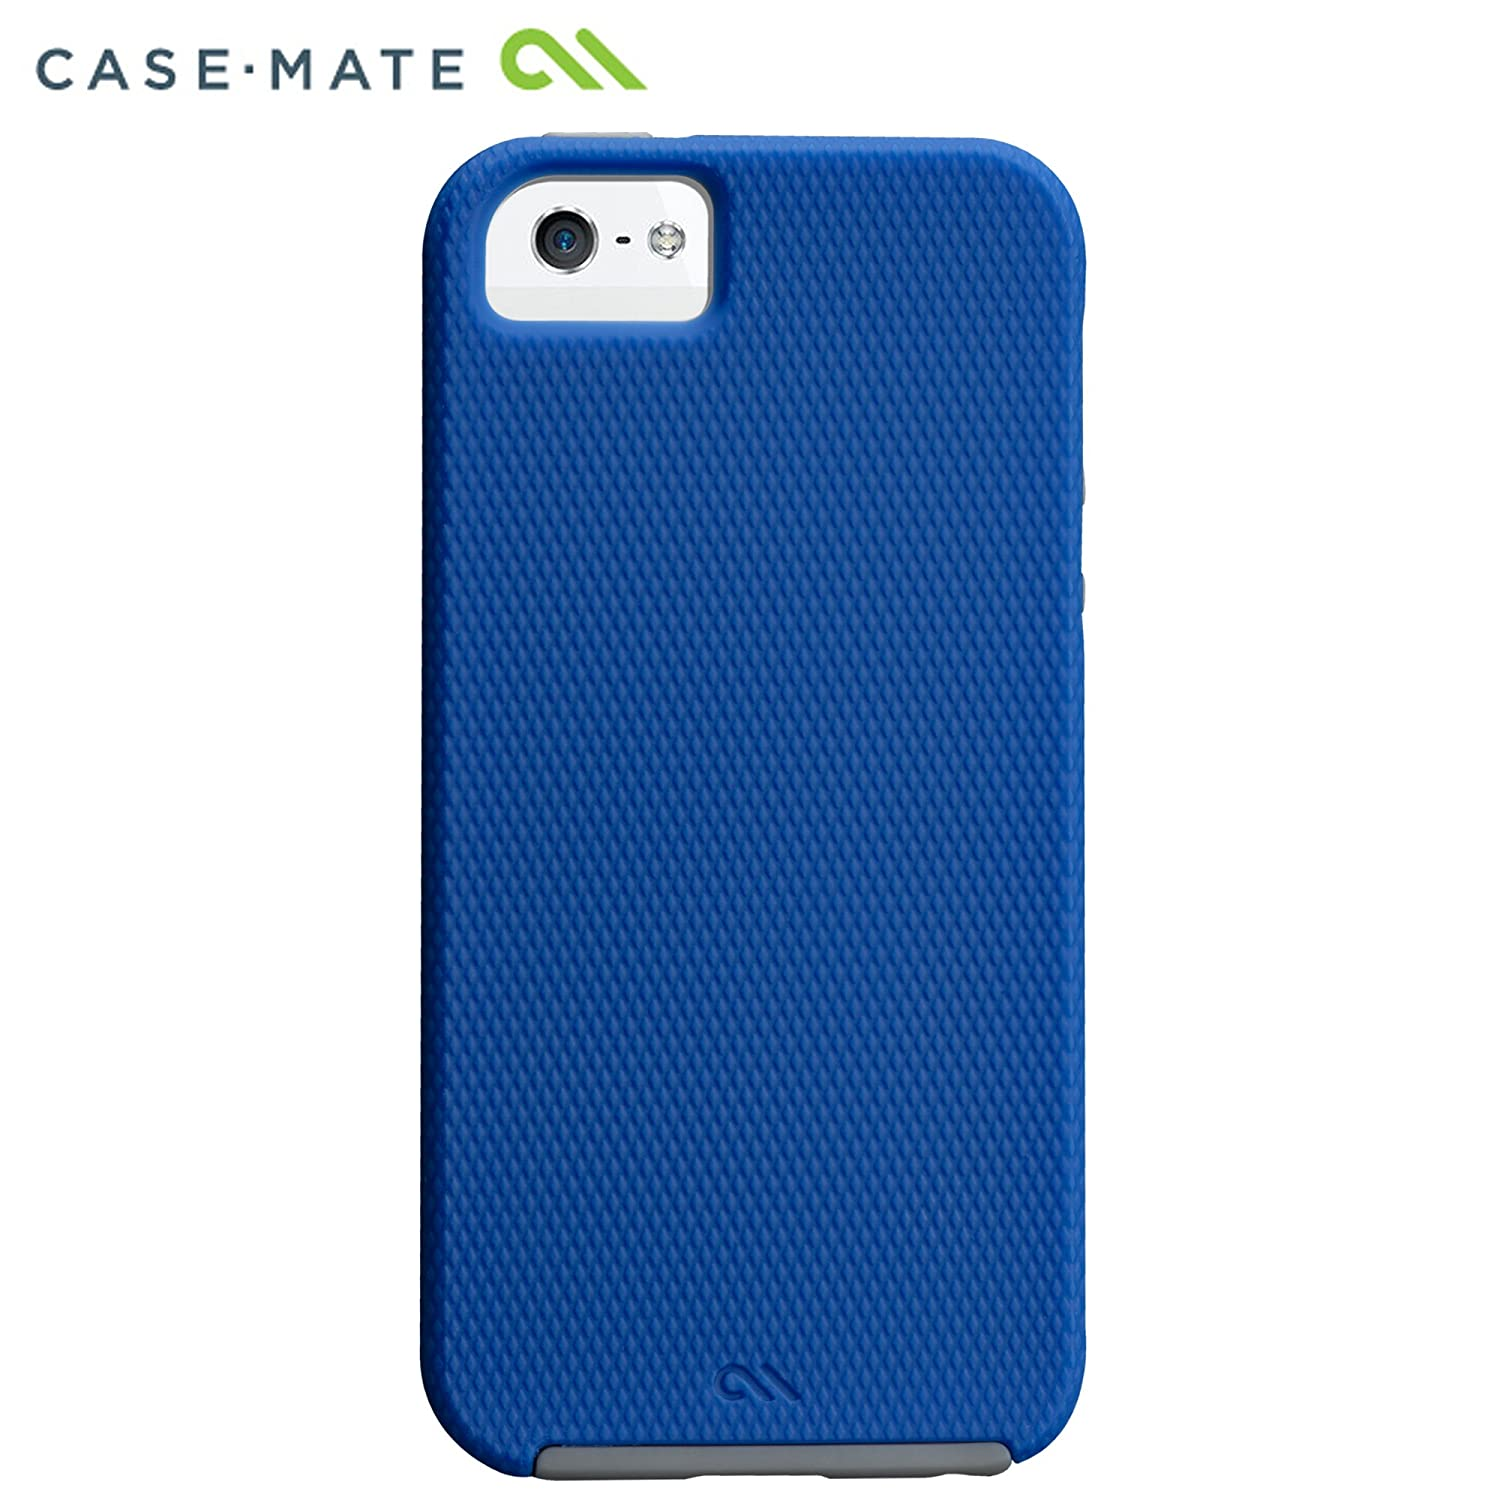 Marine solar panel installations first mate marine inc - Amazon Com Iphone 5 Tough Cases Olo By Case Mate Marine Blue Titanium Grey Cell Phones Accessories